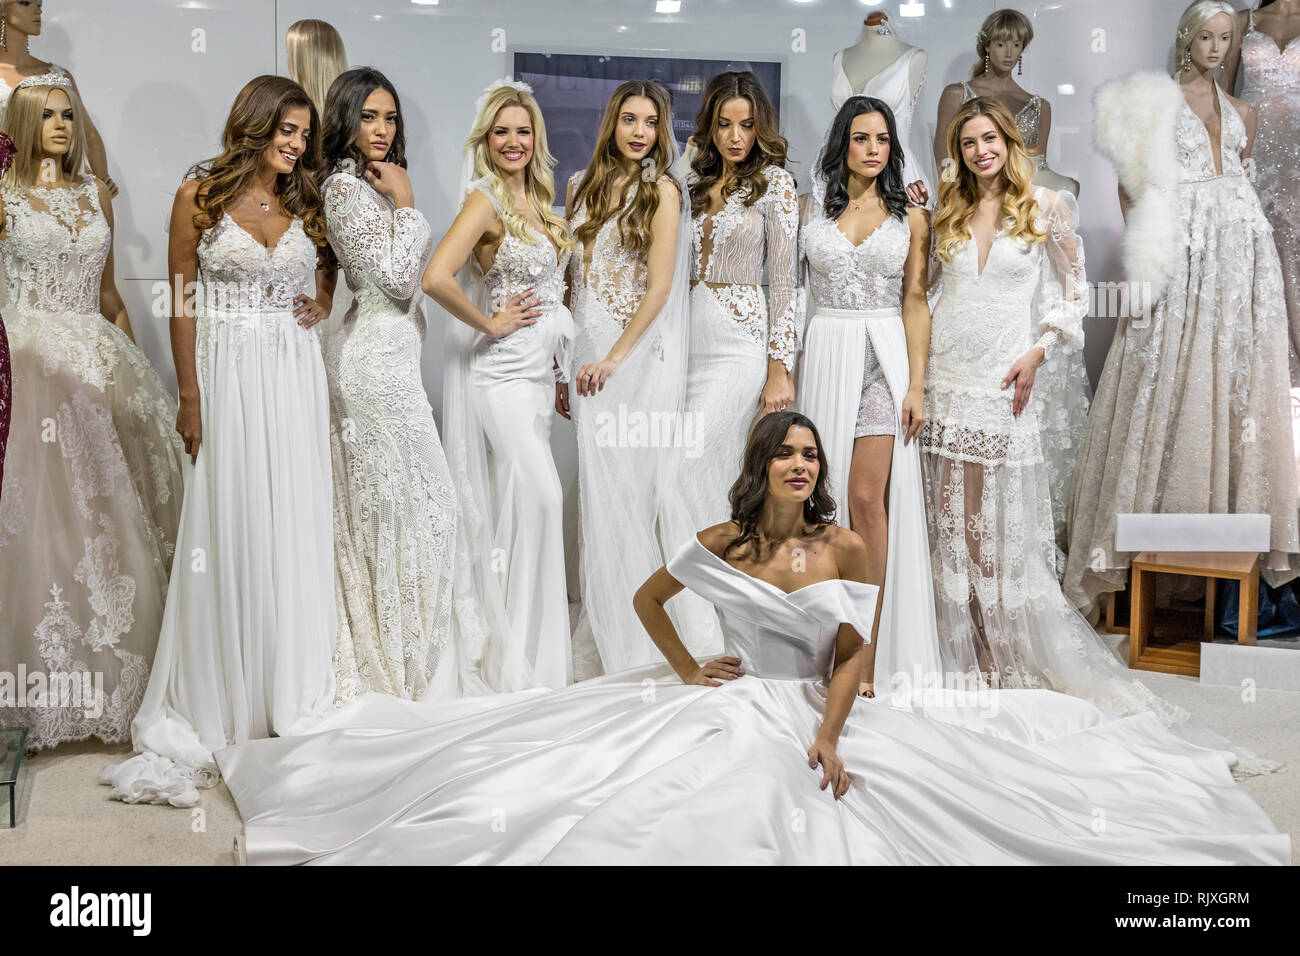 04213f80e75 Beautiful young models posing in wedding dresses on Zagreb Wedding Expo  2019 - Stock Image